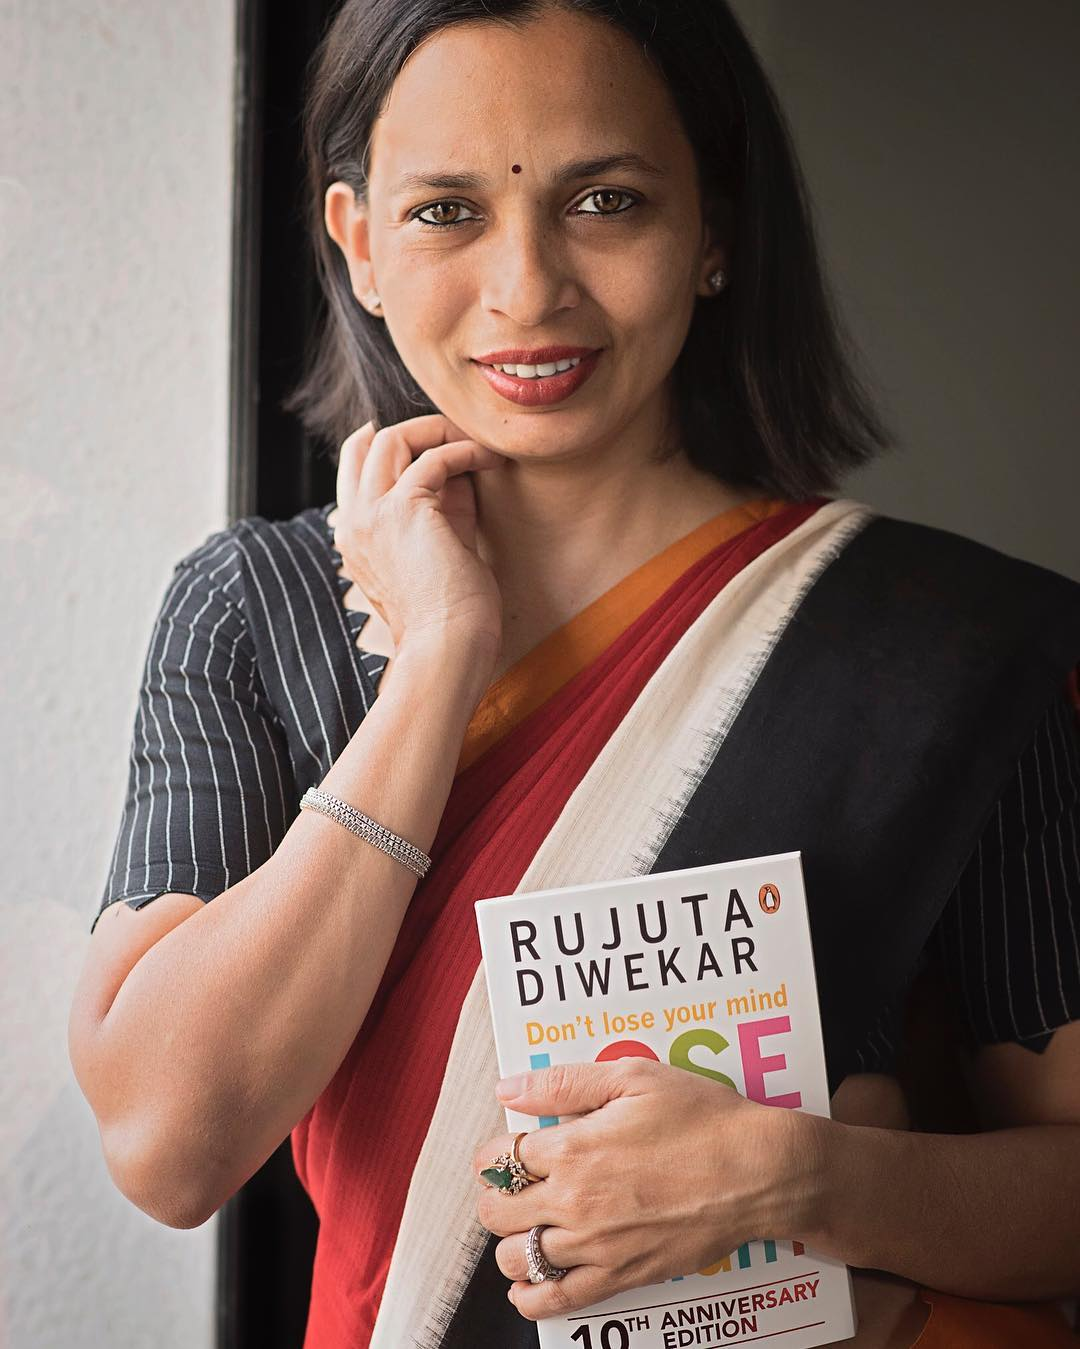 Tips On Rujuta Diwekar Diet Plan To Lose Weight Fast Diet Rujuta gives you the ideal, healthy and nutritious breakfast. tips on rujuta diwekar diet plan to